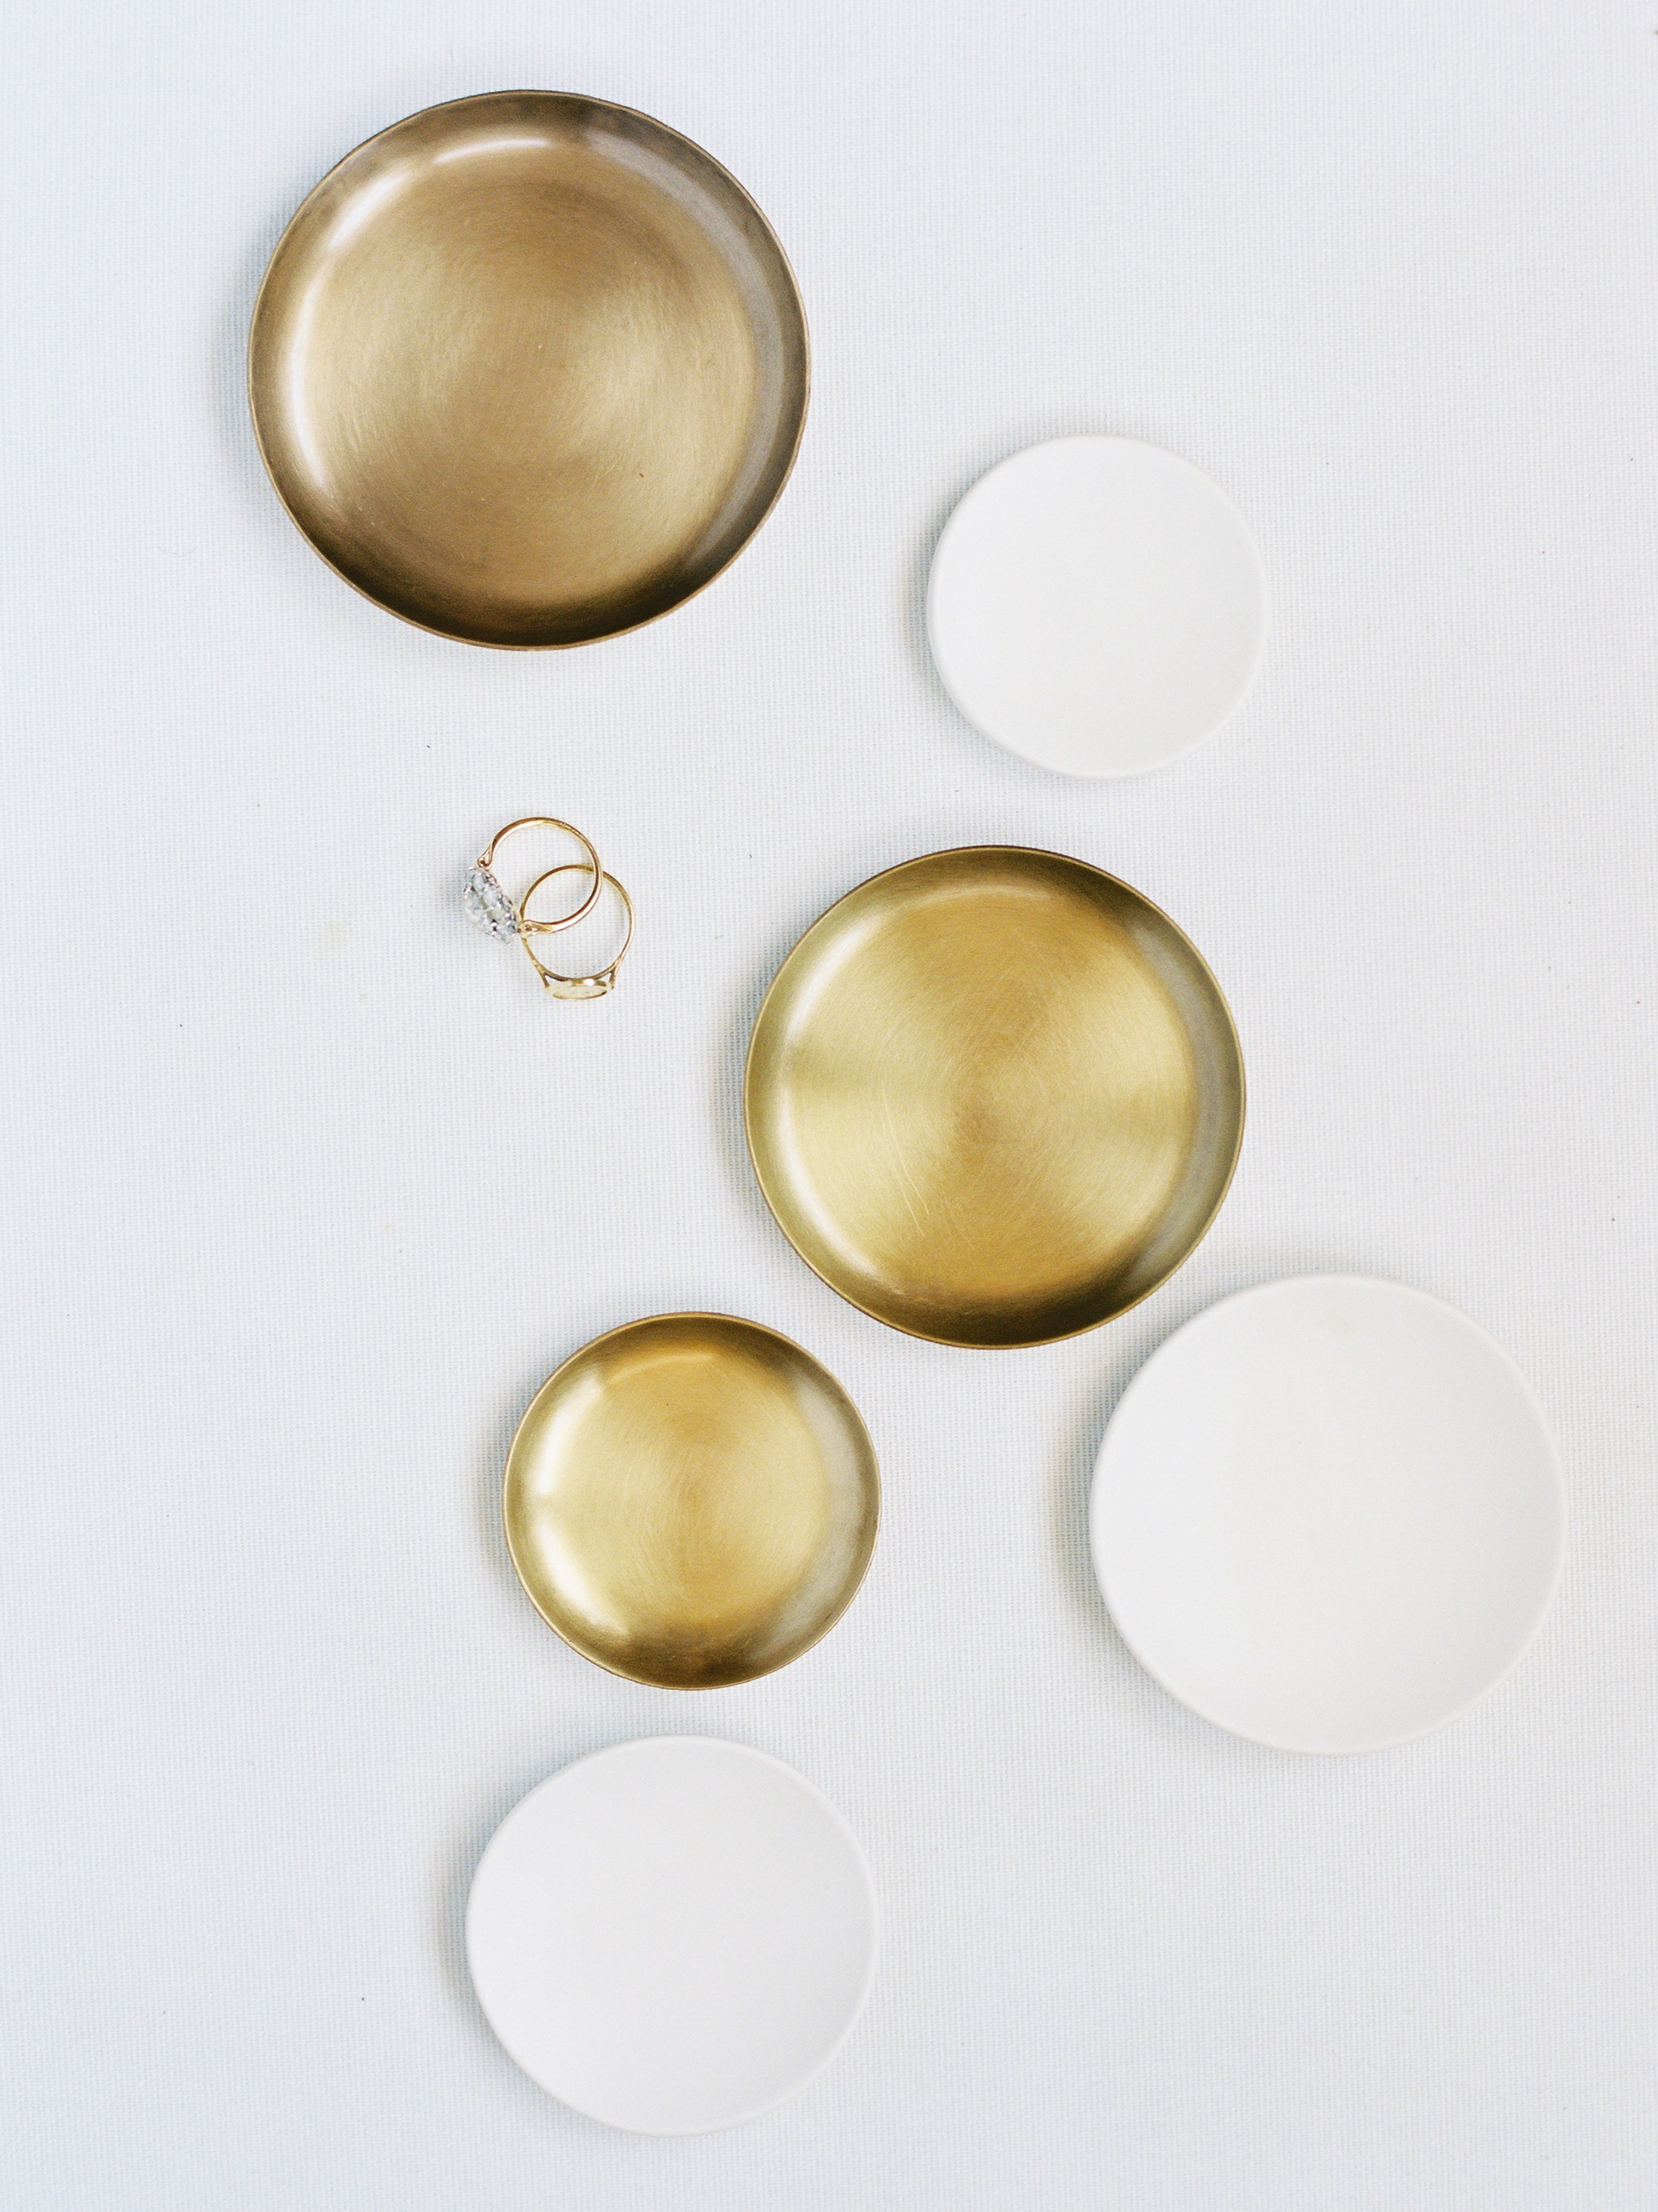 New Styling Dishes - PORCELAIN & BRASS DISH SETS